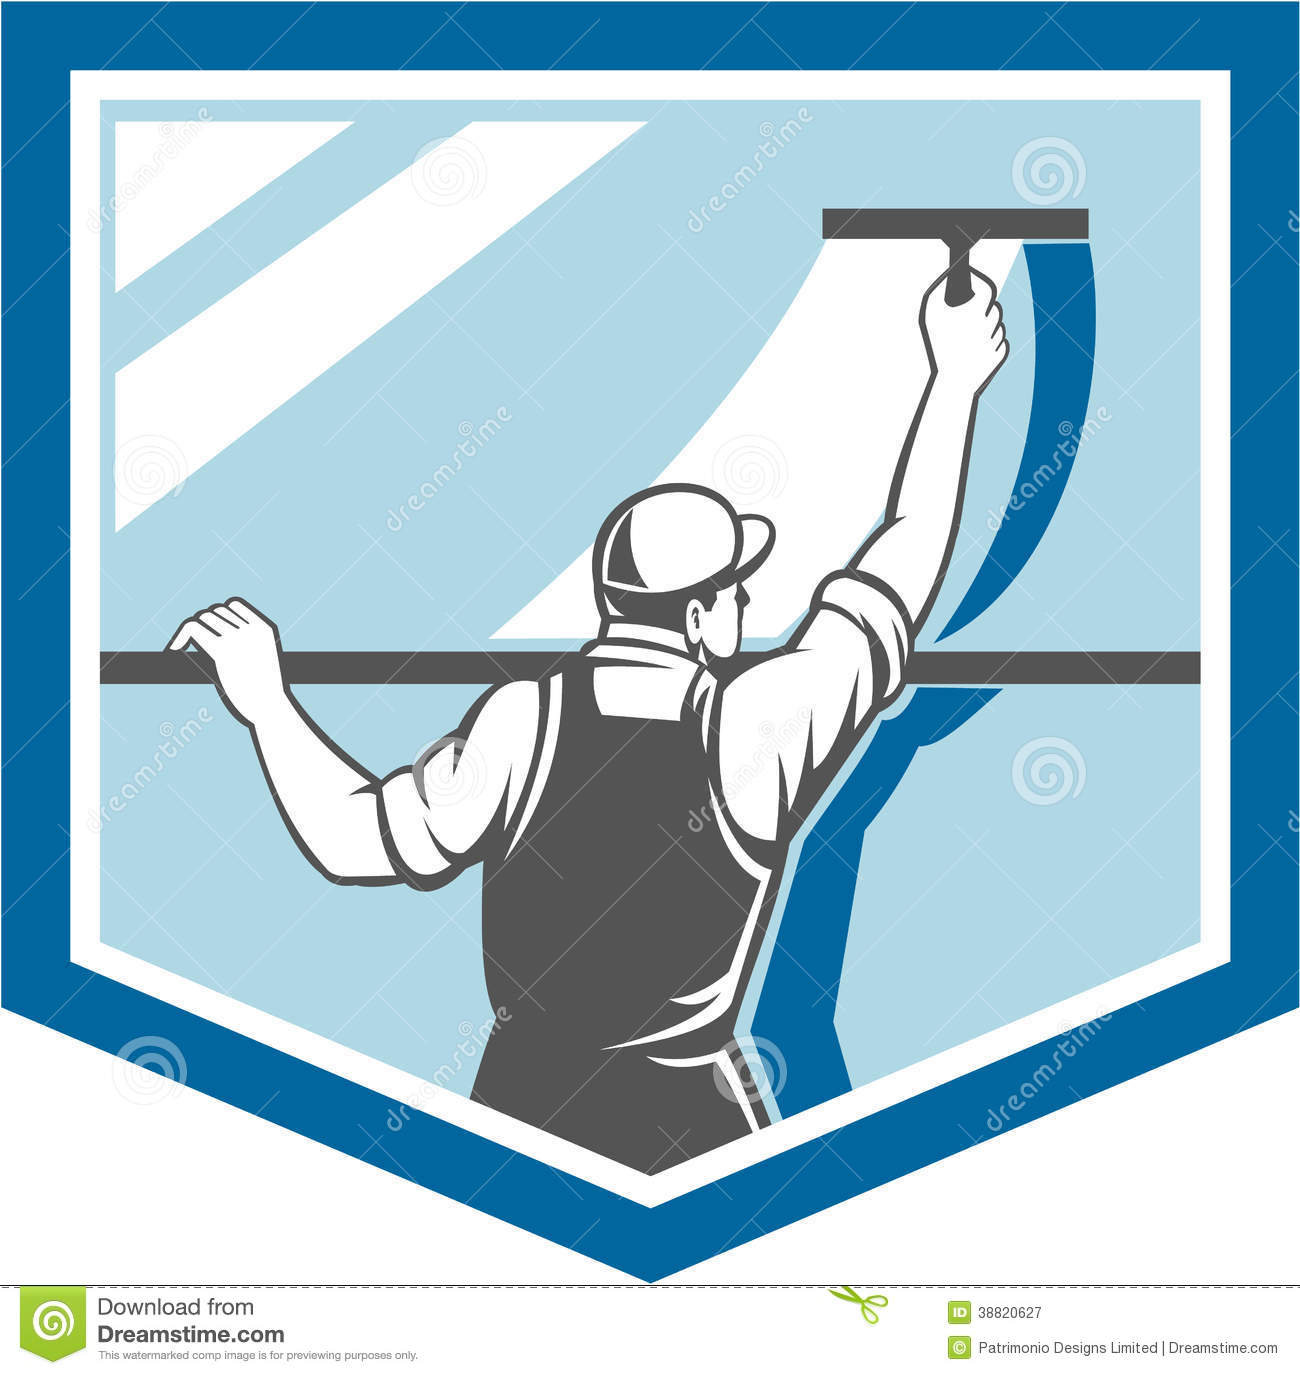 window cleaner washer worker shield retro royalty free stock photography